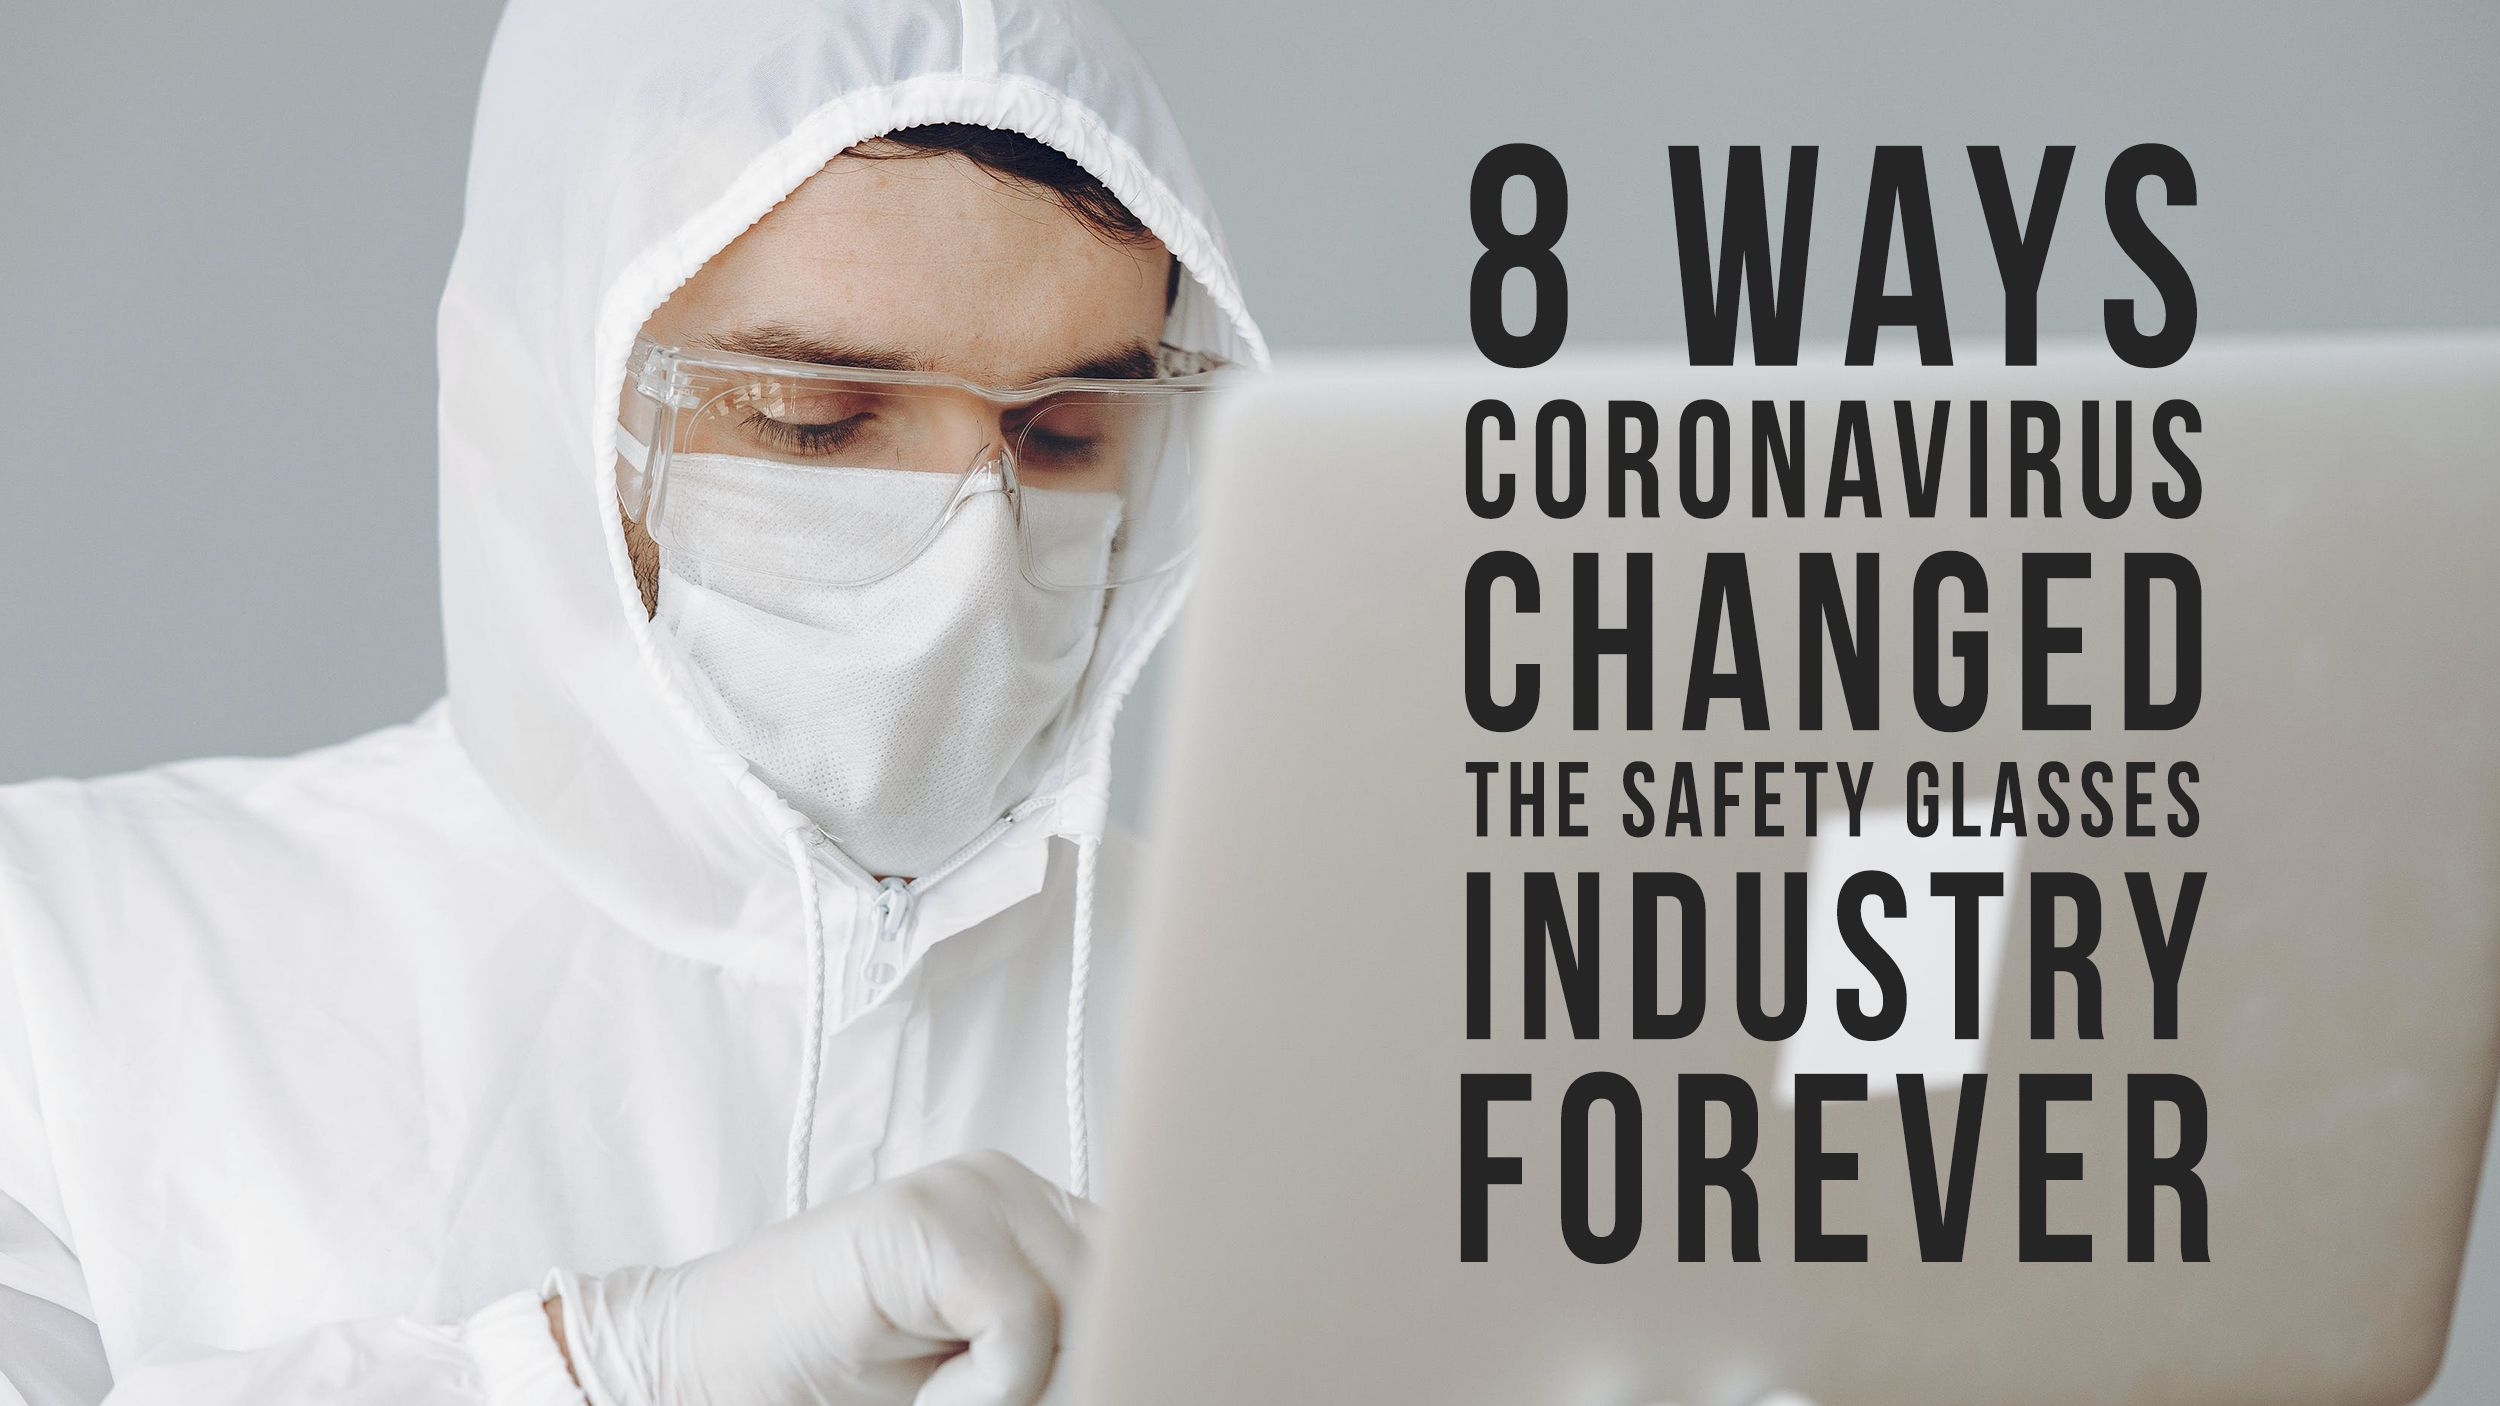 8 Ways Coronavirus Changed the Safety Glasses Industry Forever Header